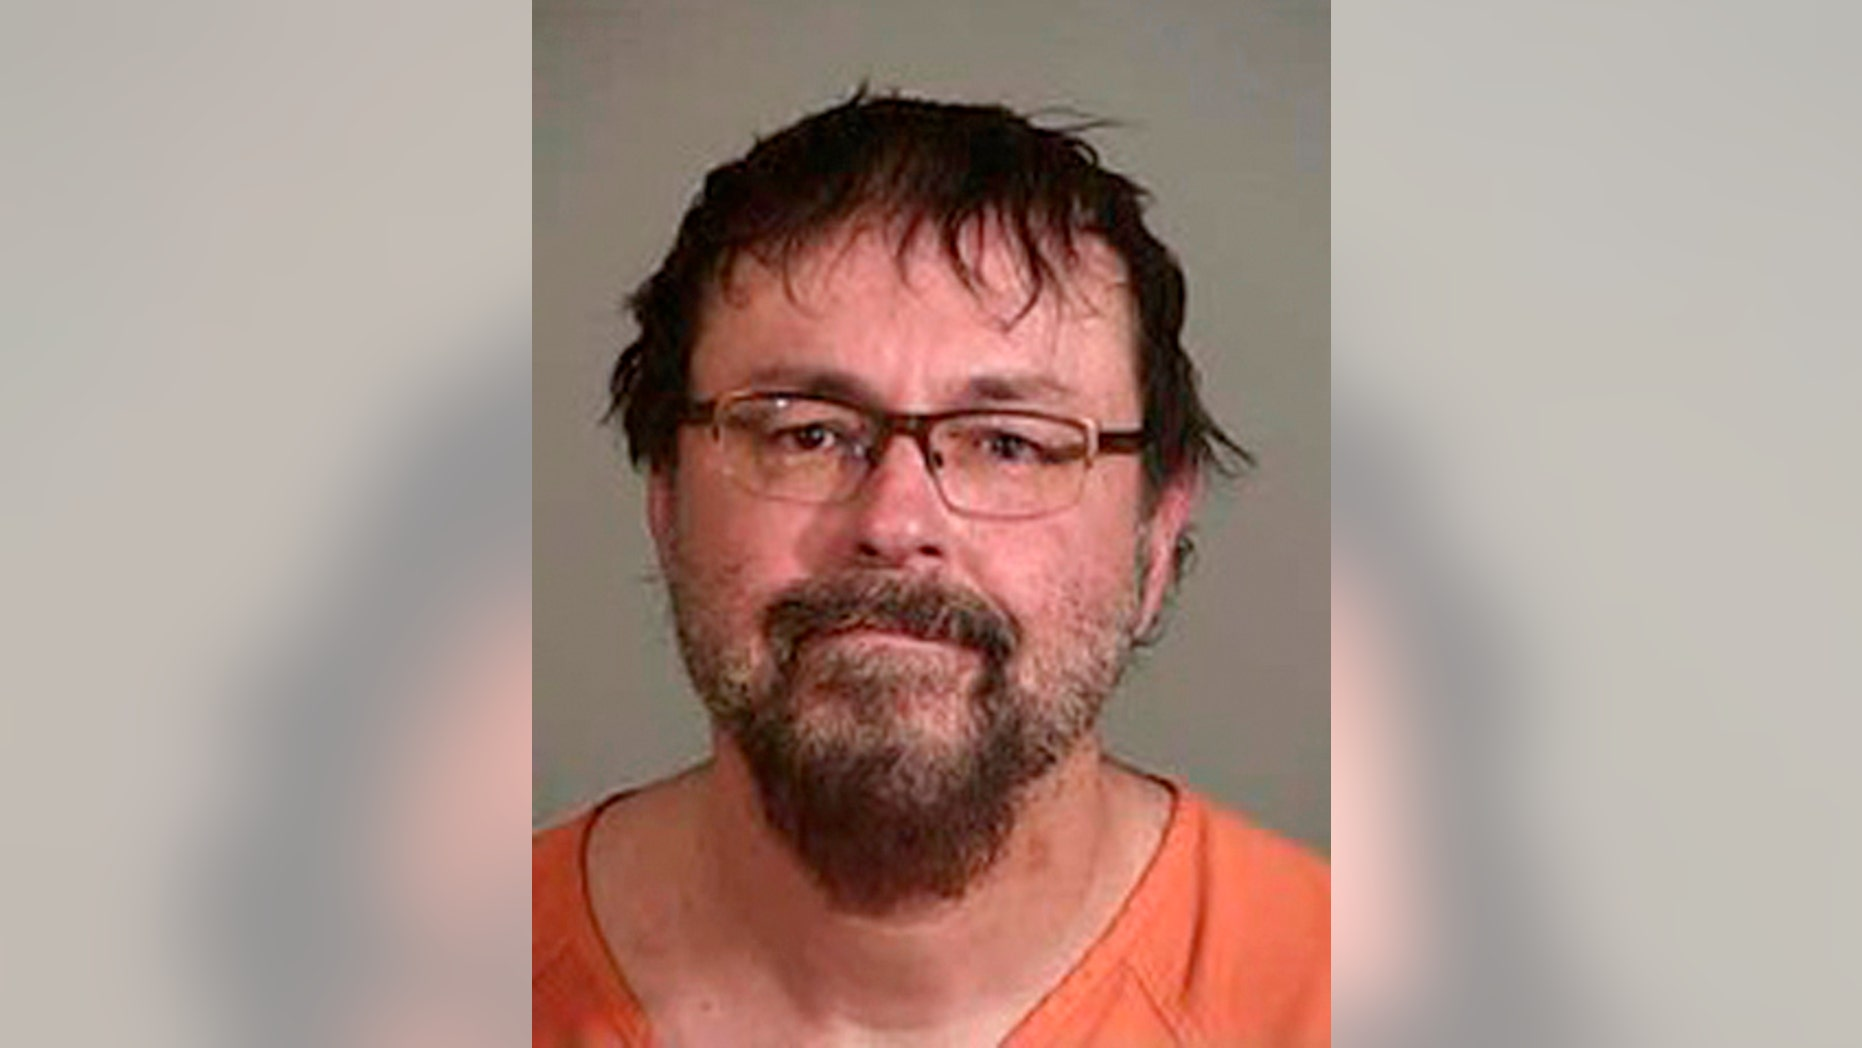 Tad Cummins, 51, pleaded guilty to federal charges on Thursday, according to The Associated Press.